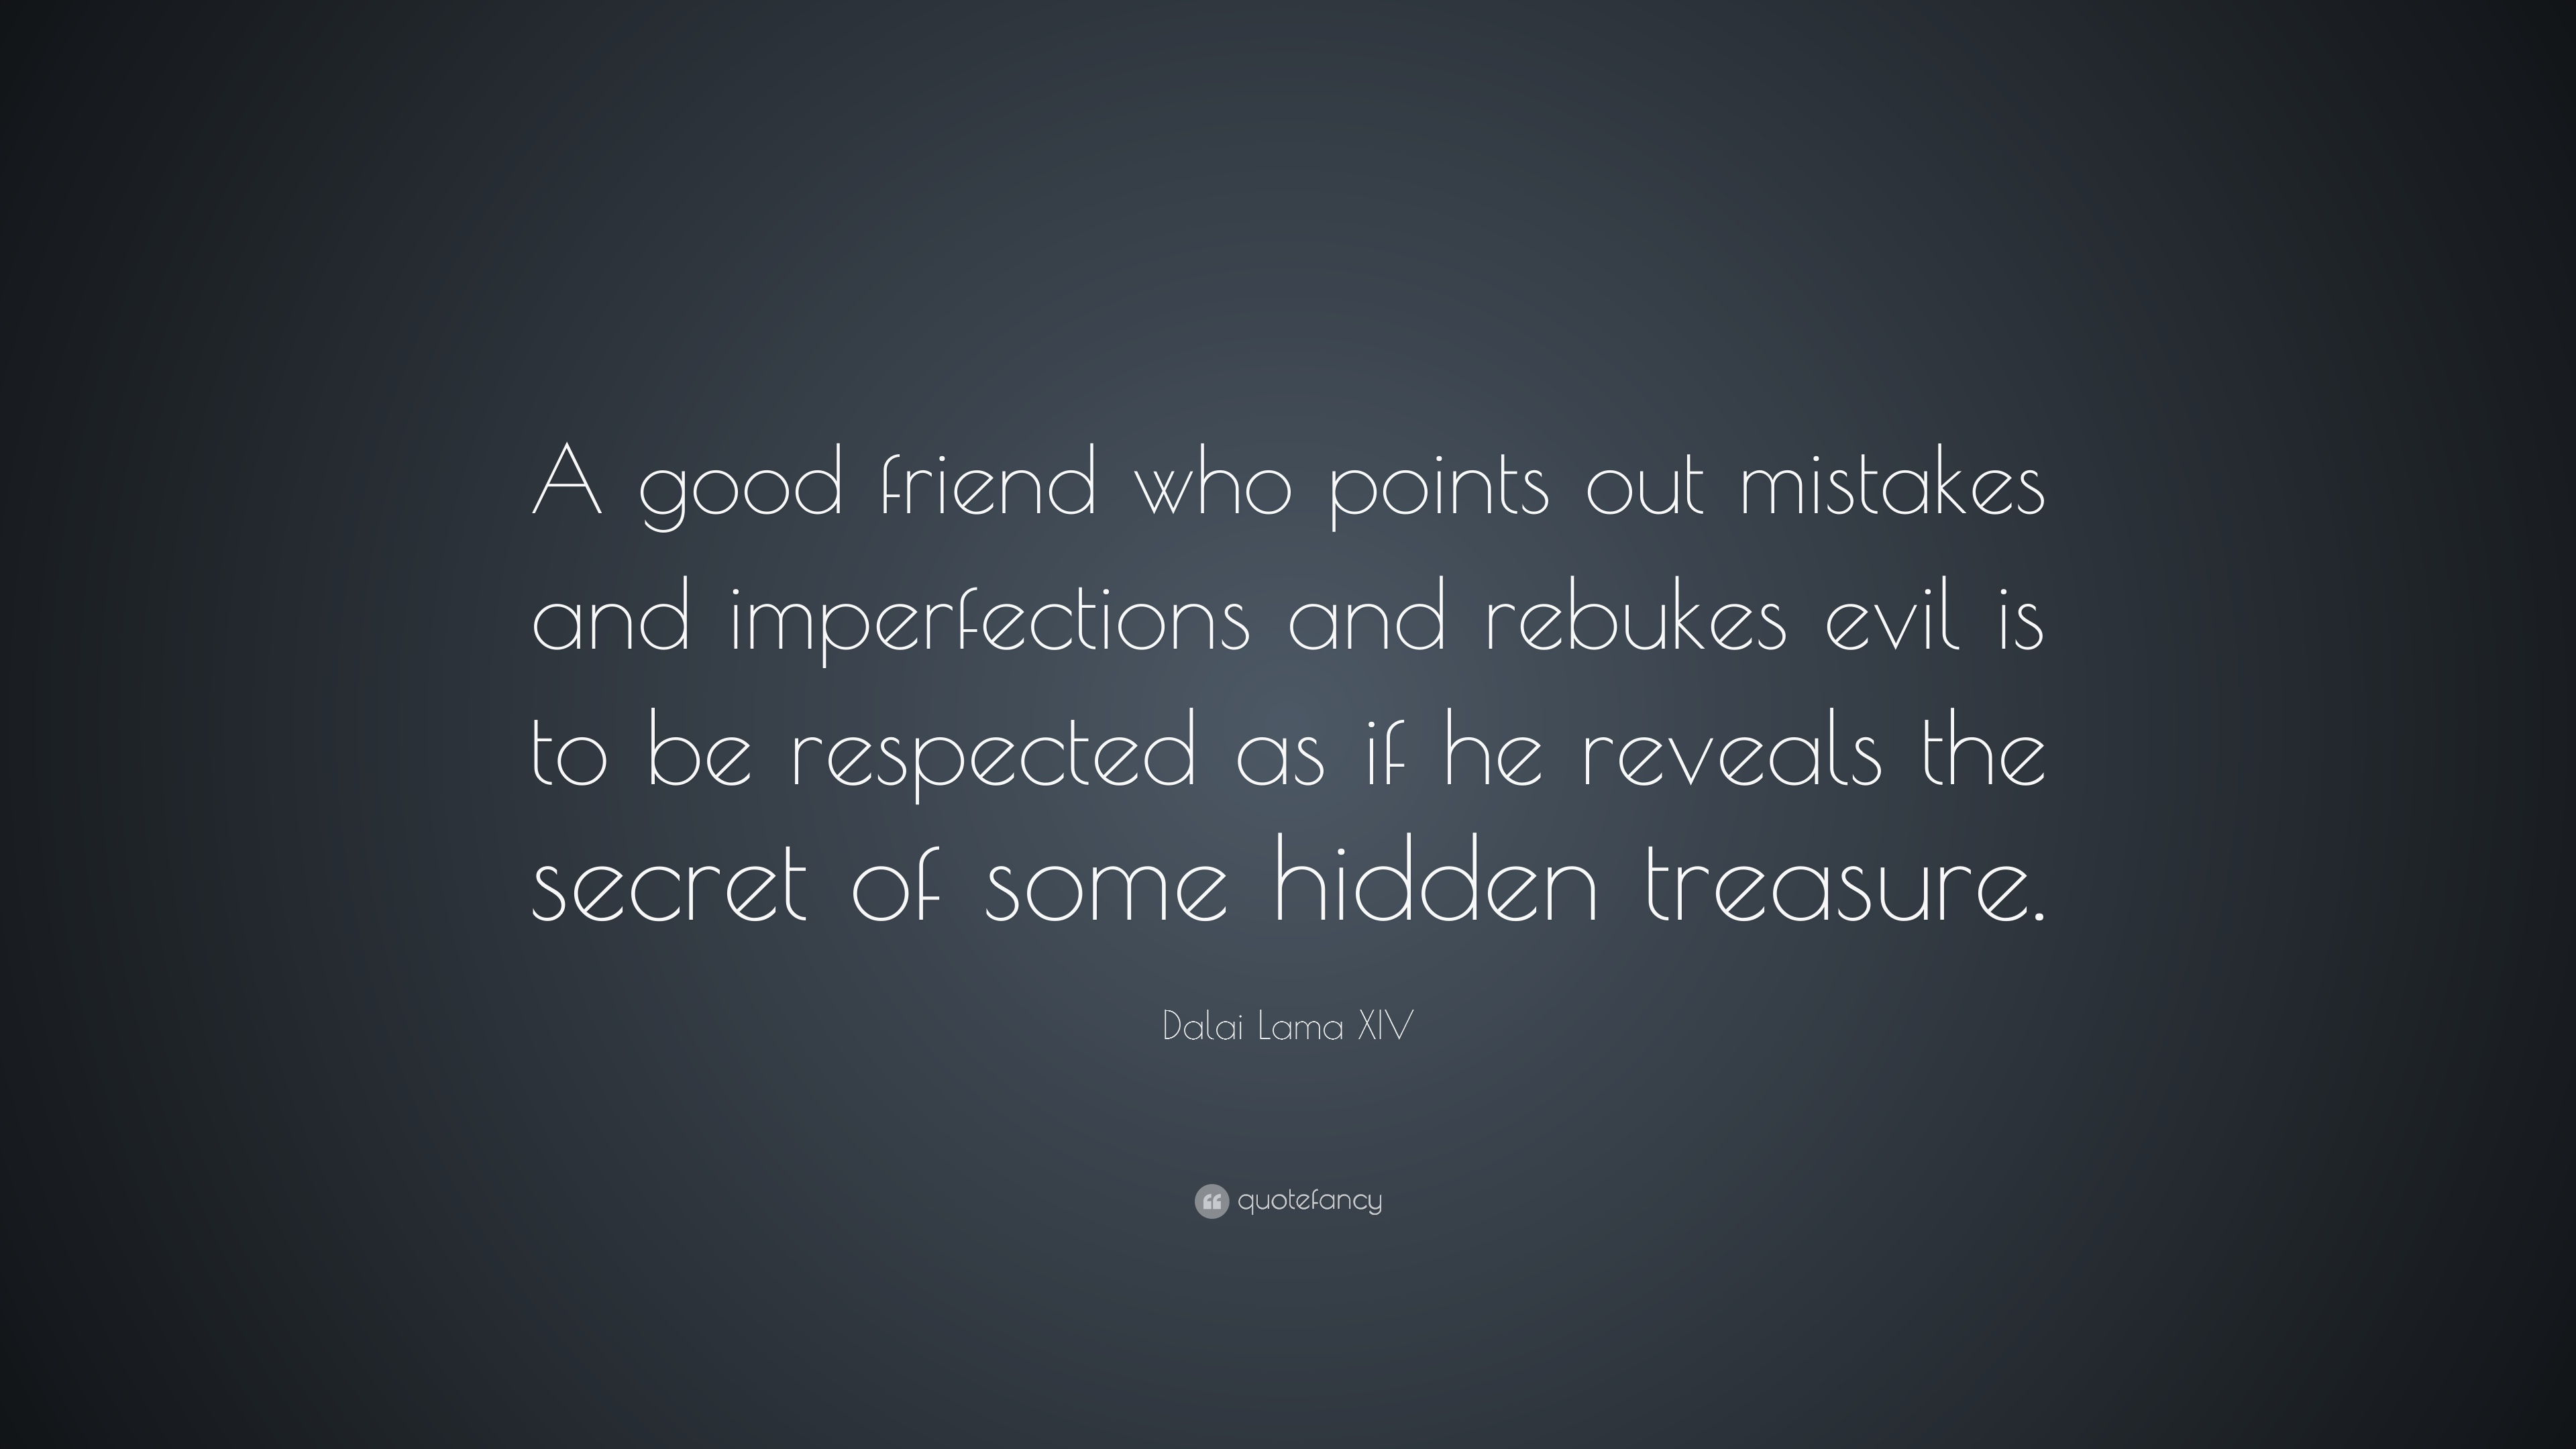 Wise Quotes About Friendship Friendship Quotes From Dalai Lama I Defeat My Enemies When Make